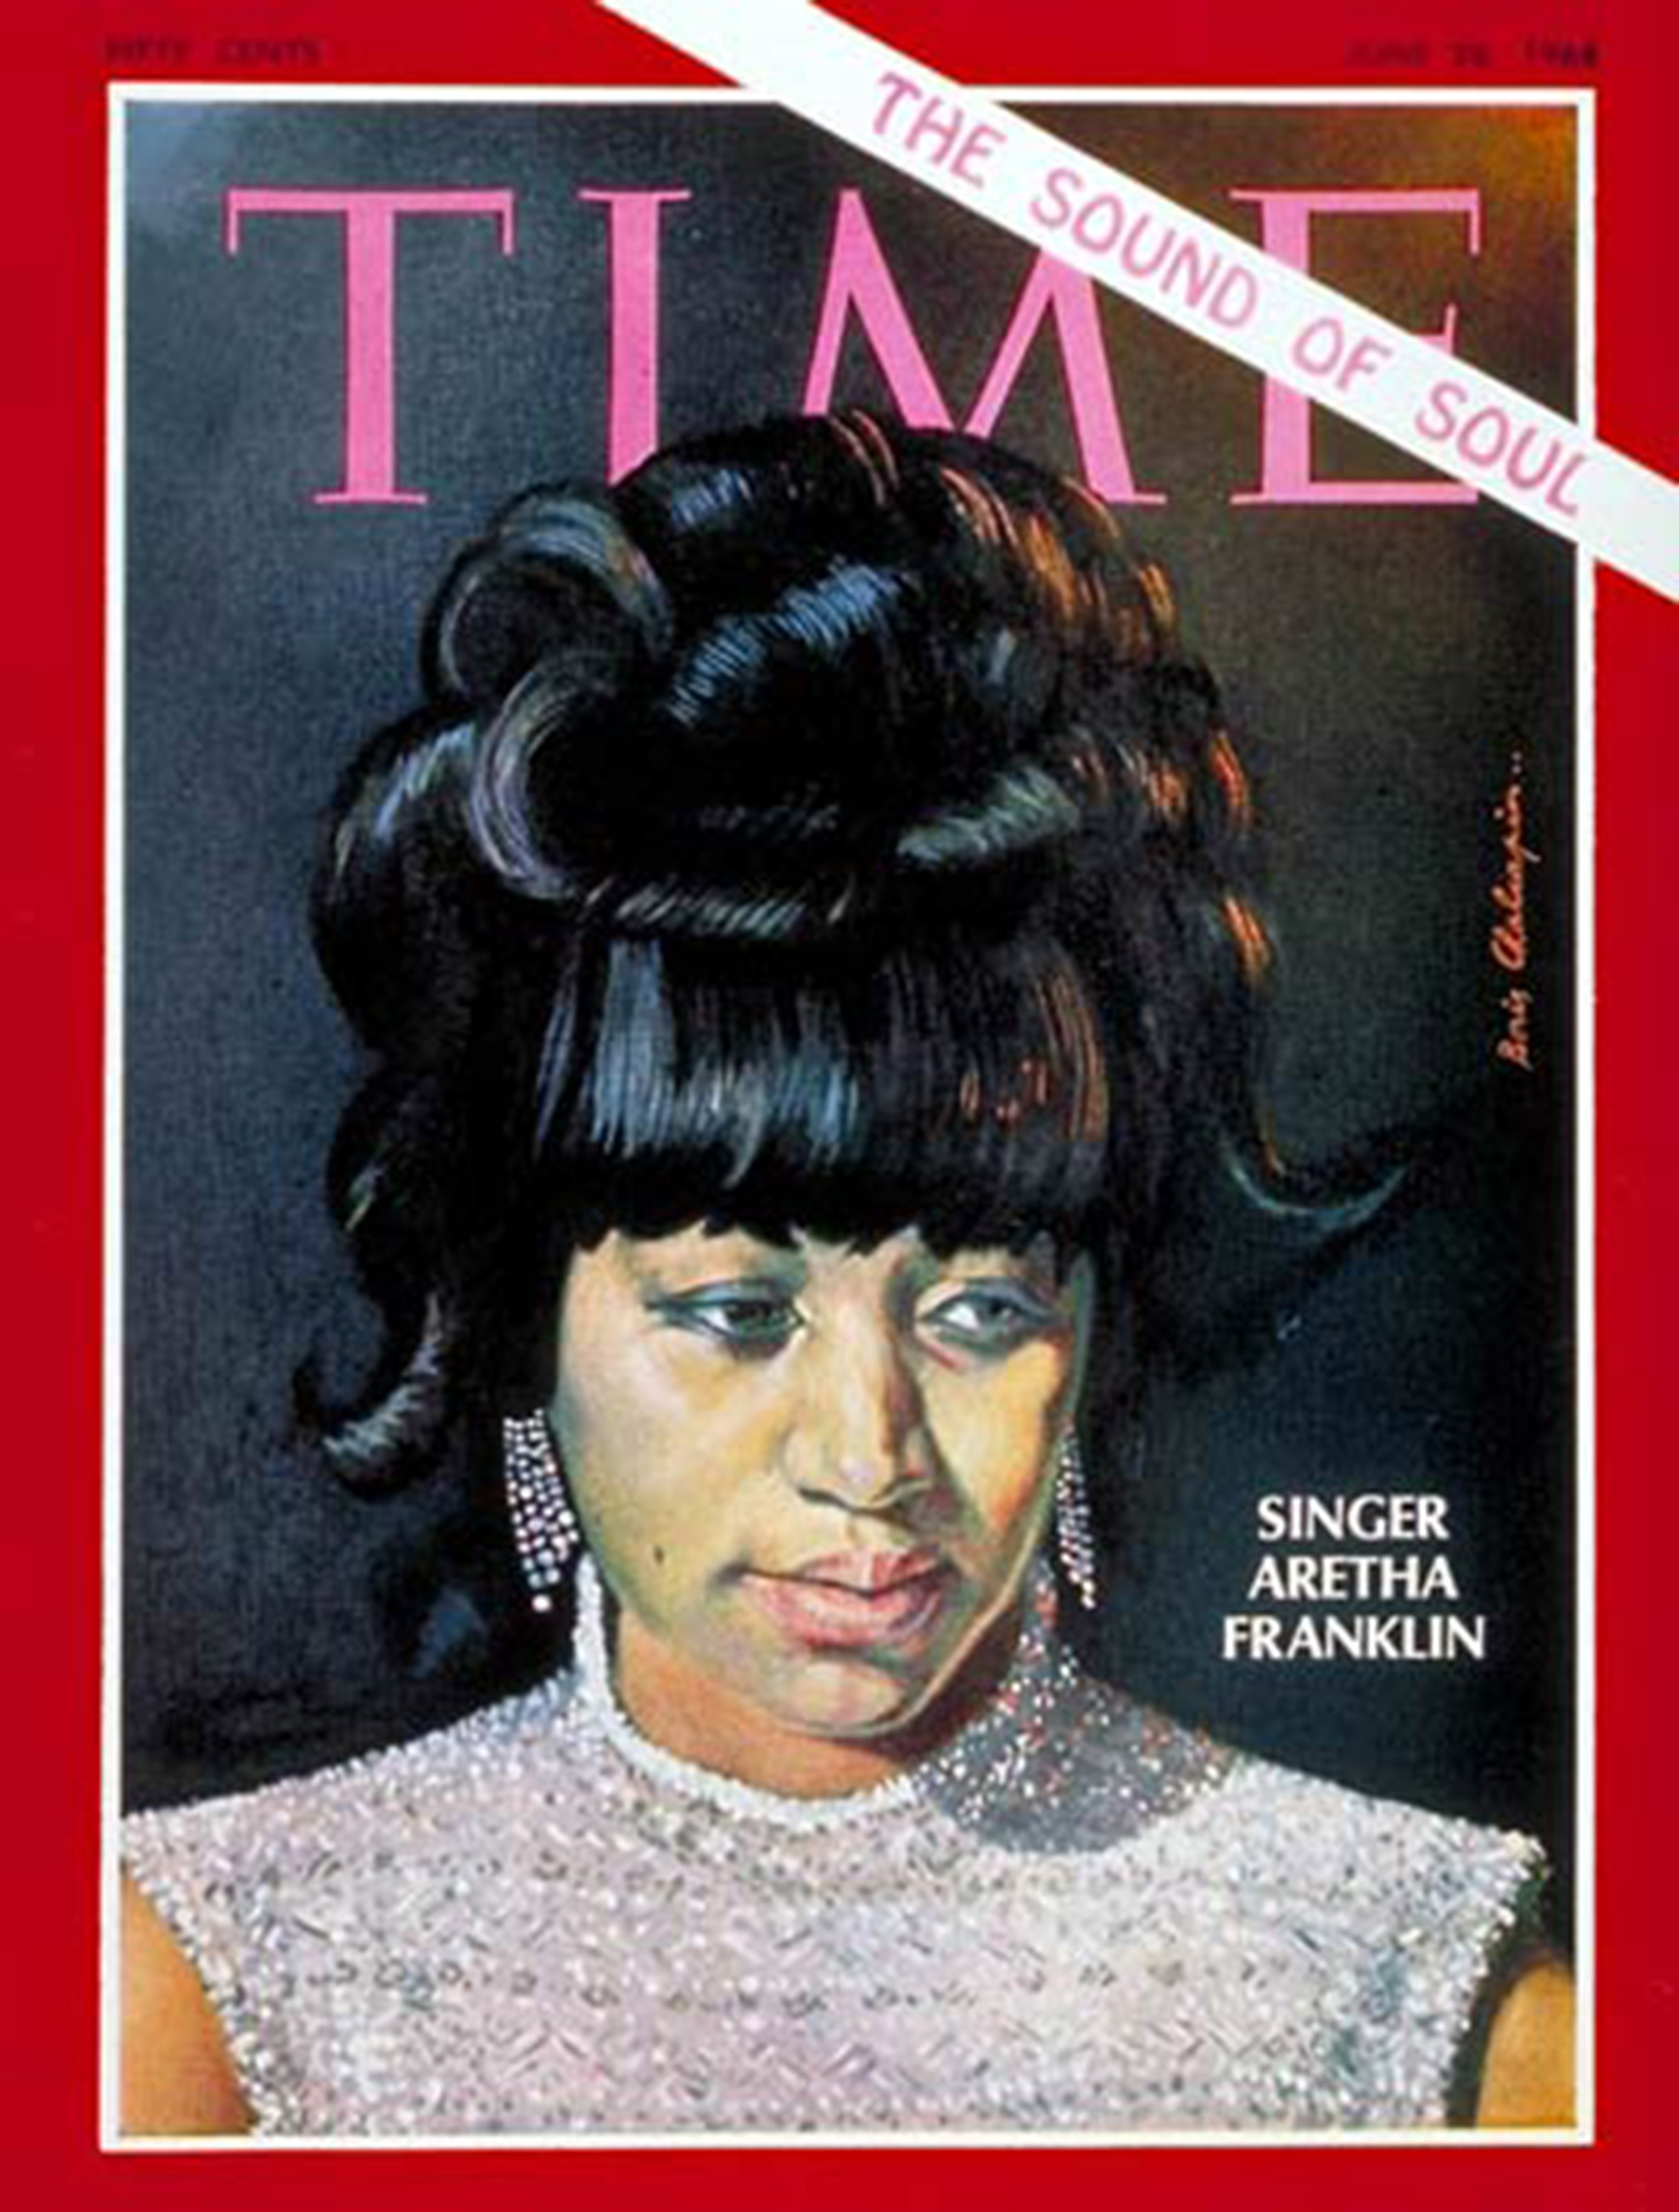 Aretha Franklin on the cover of the June 28, 1968, issue of TIME.